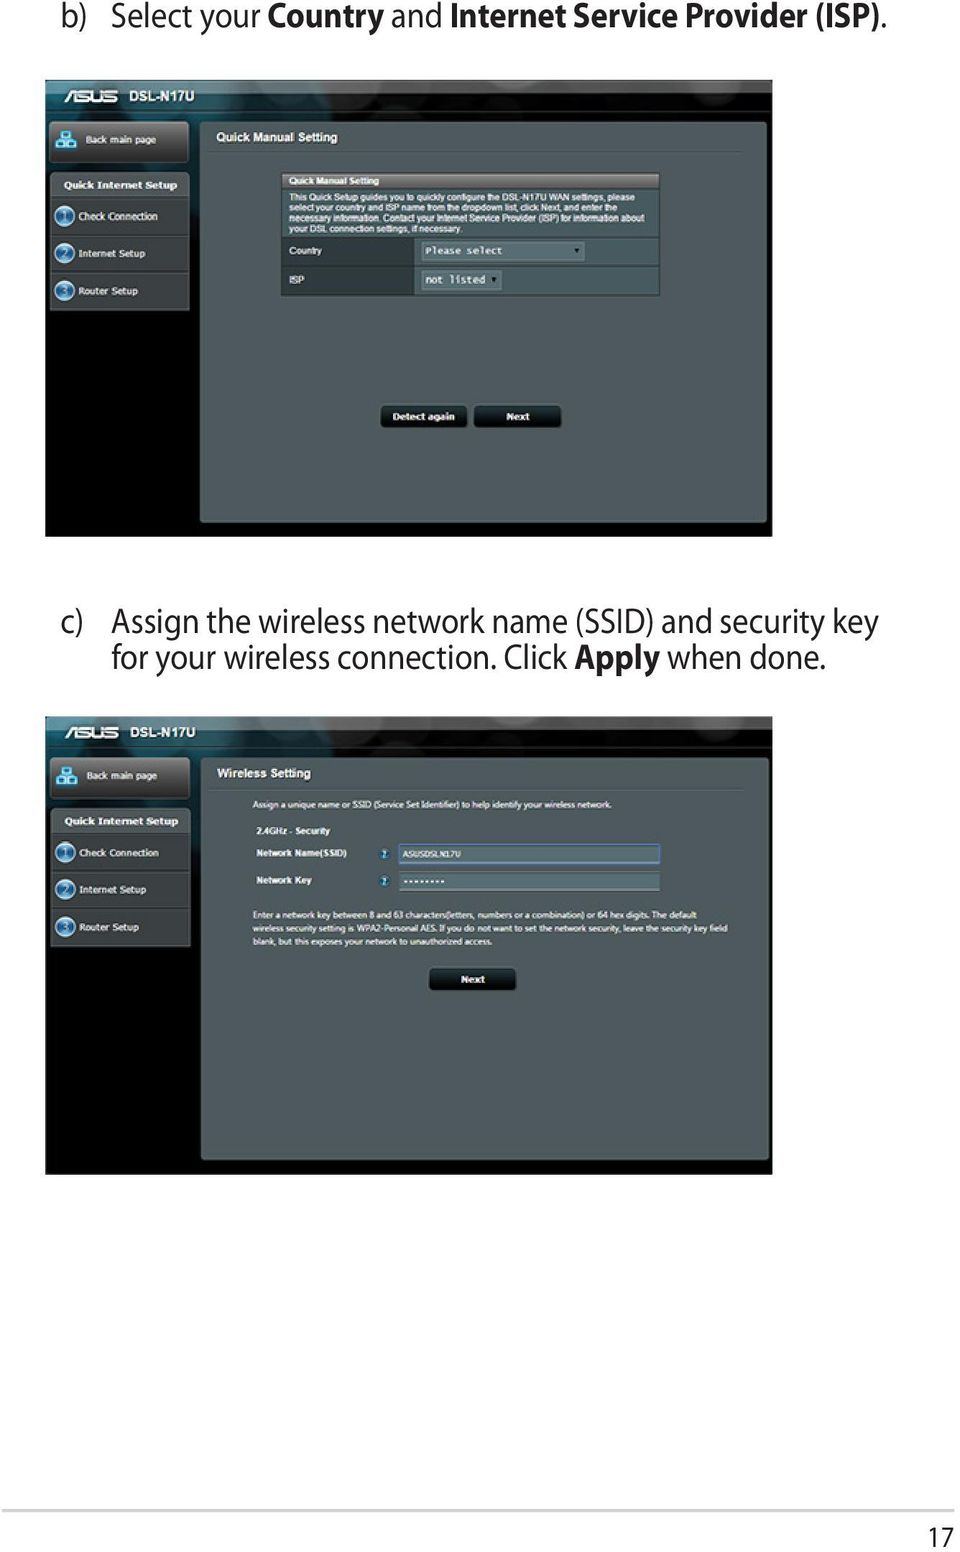 c) Assign the wireless network name (SSID)